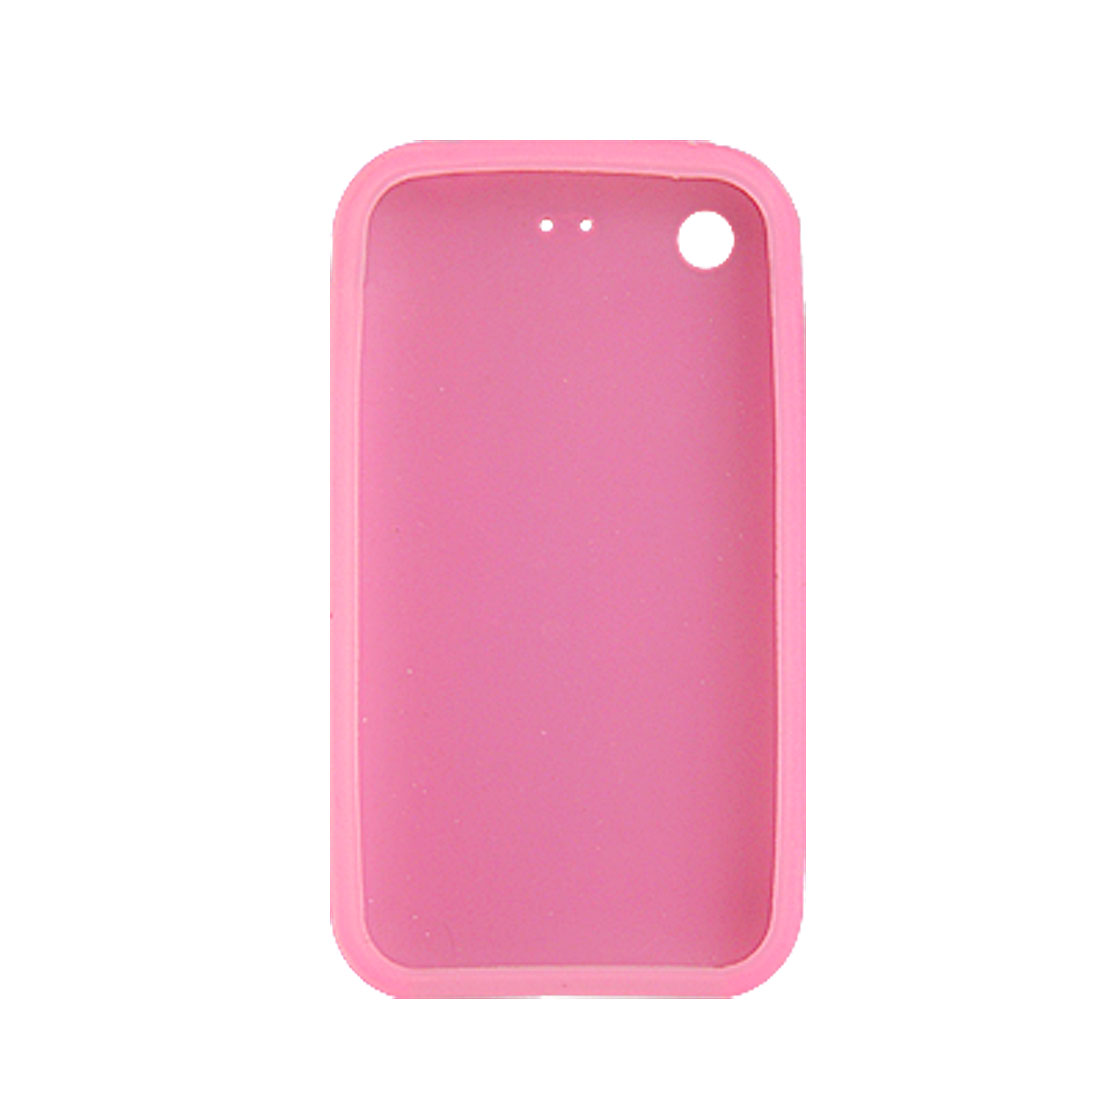 Pink Silicone Skin Case Cover for Apple iPhone 3G / 3GS